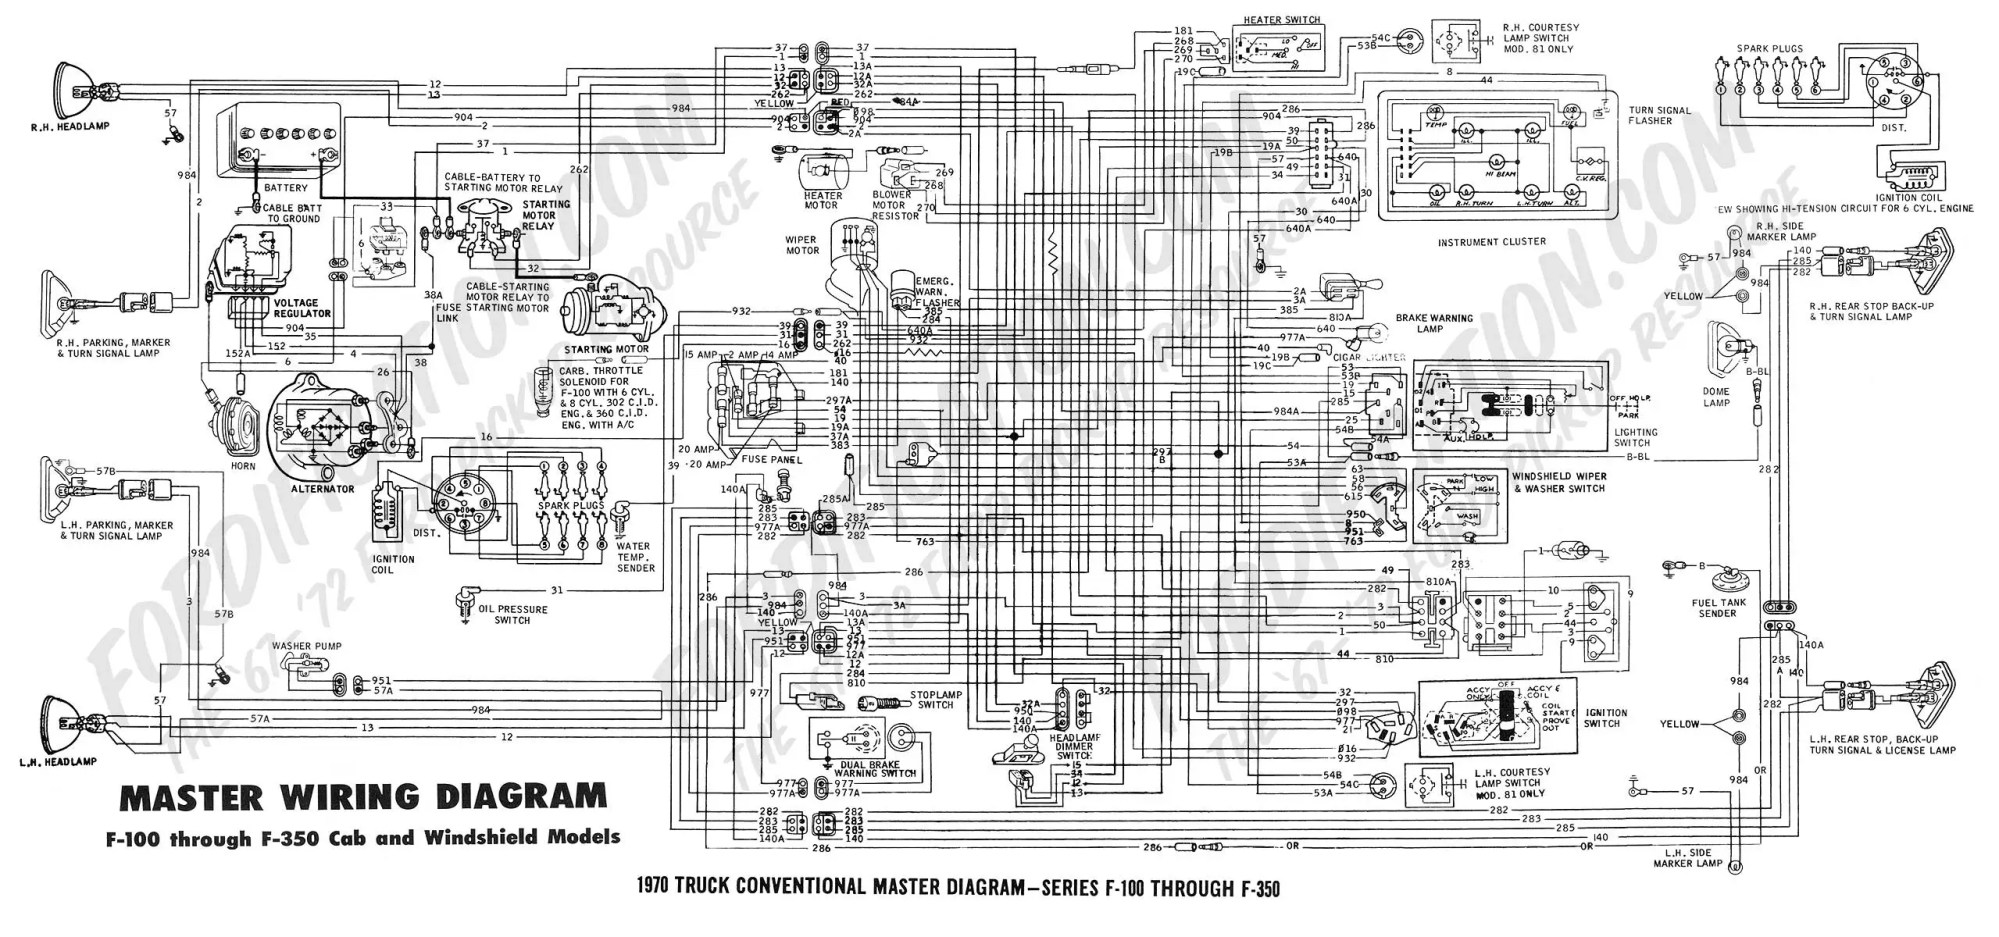 hight resolution of 1987 f350 wiring diagrams electrical wiring diagrams rh 67 phd medical faculty hamburg de 1994 ford f250 wiring diagram 1994 ford f250 ignition wiring